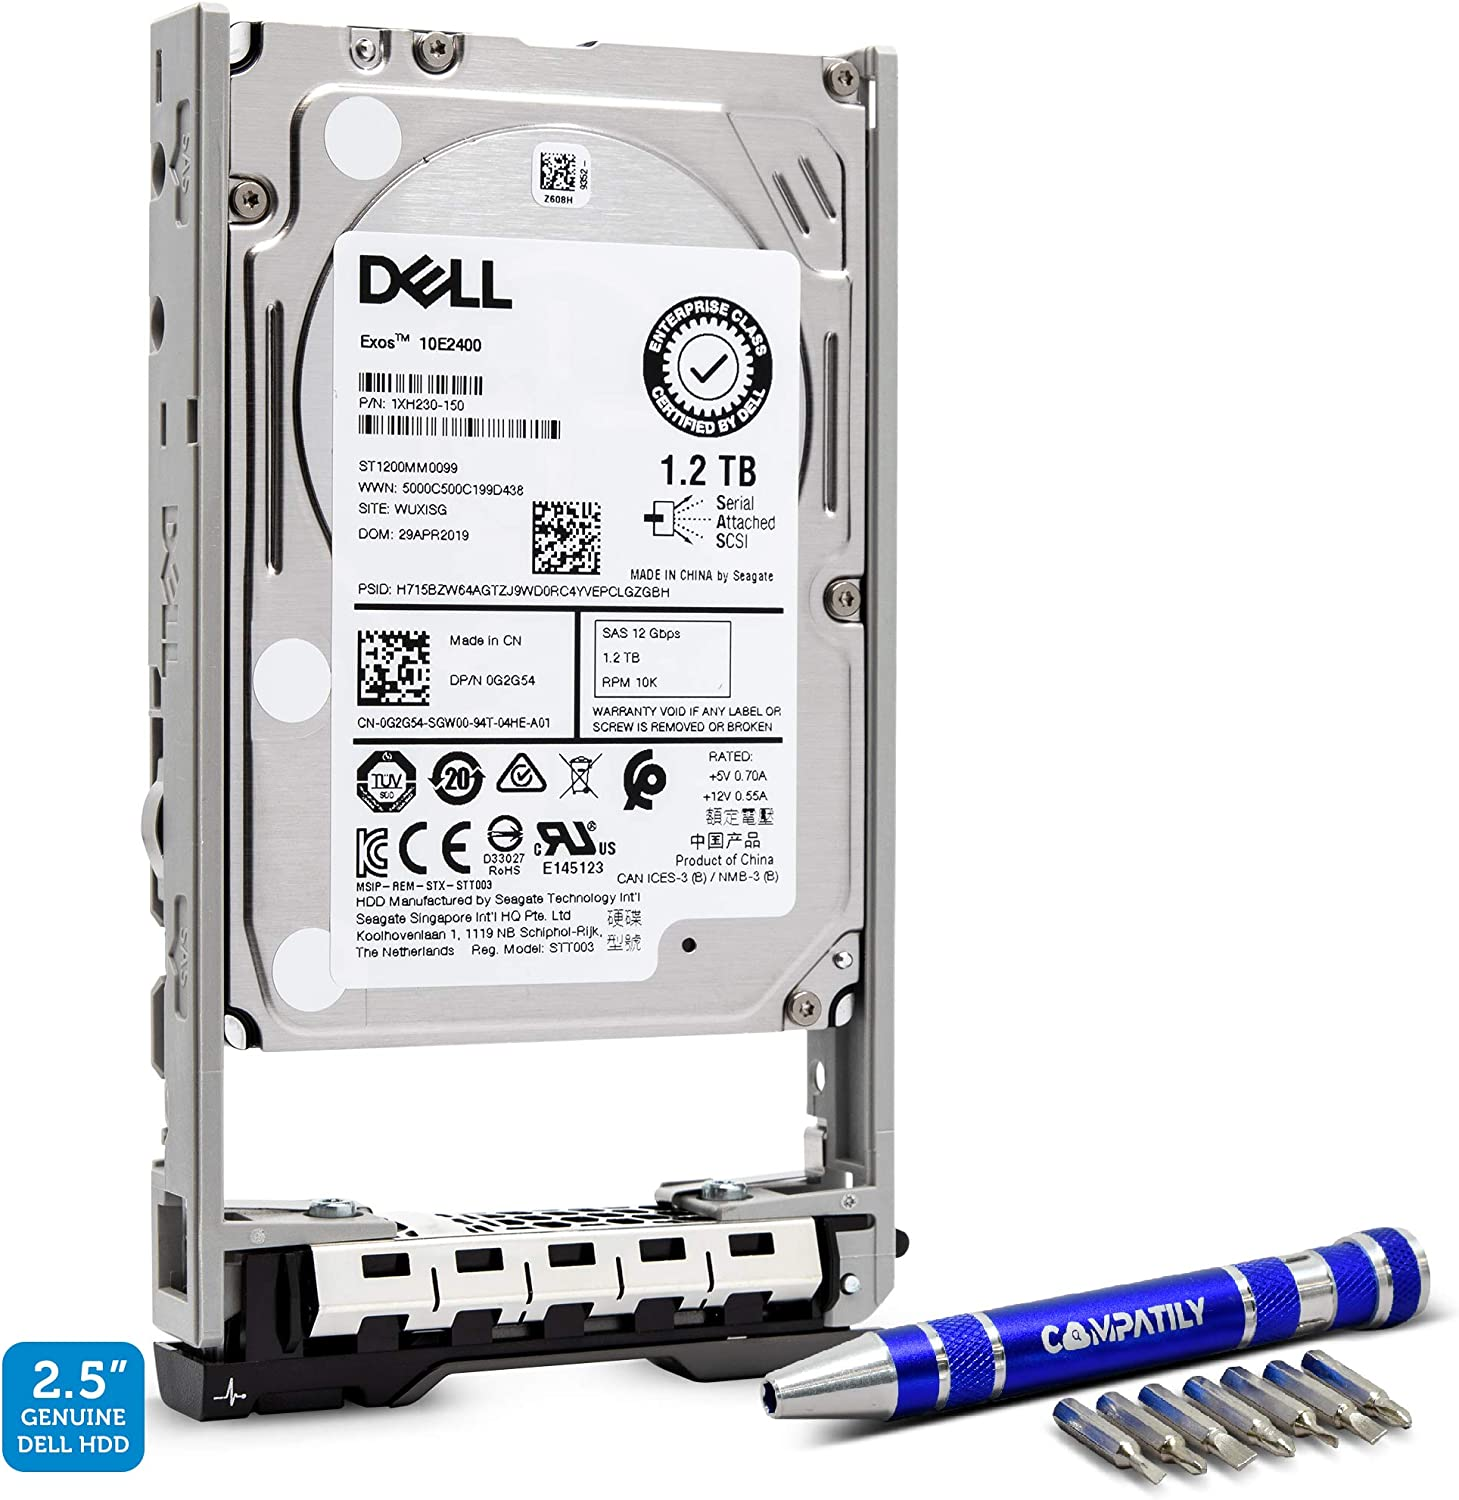 """Dell 400-AJPD 1.2TB 10K SAS 12G 2.5""""   0G2G54 ST1200MM0099 Exos 10E2400   PowerEdge HDD Enterprise Hard Drive in 13G Tray Bundle with Compatily Screwdriver Compatible with 463-7475 89D42 R730 T310"""